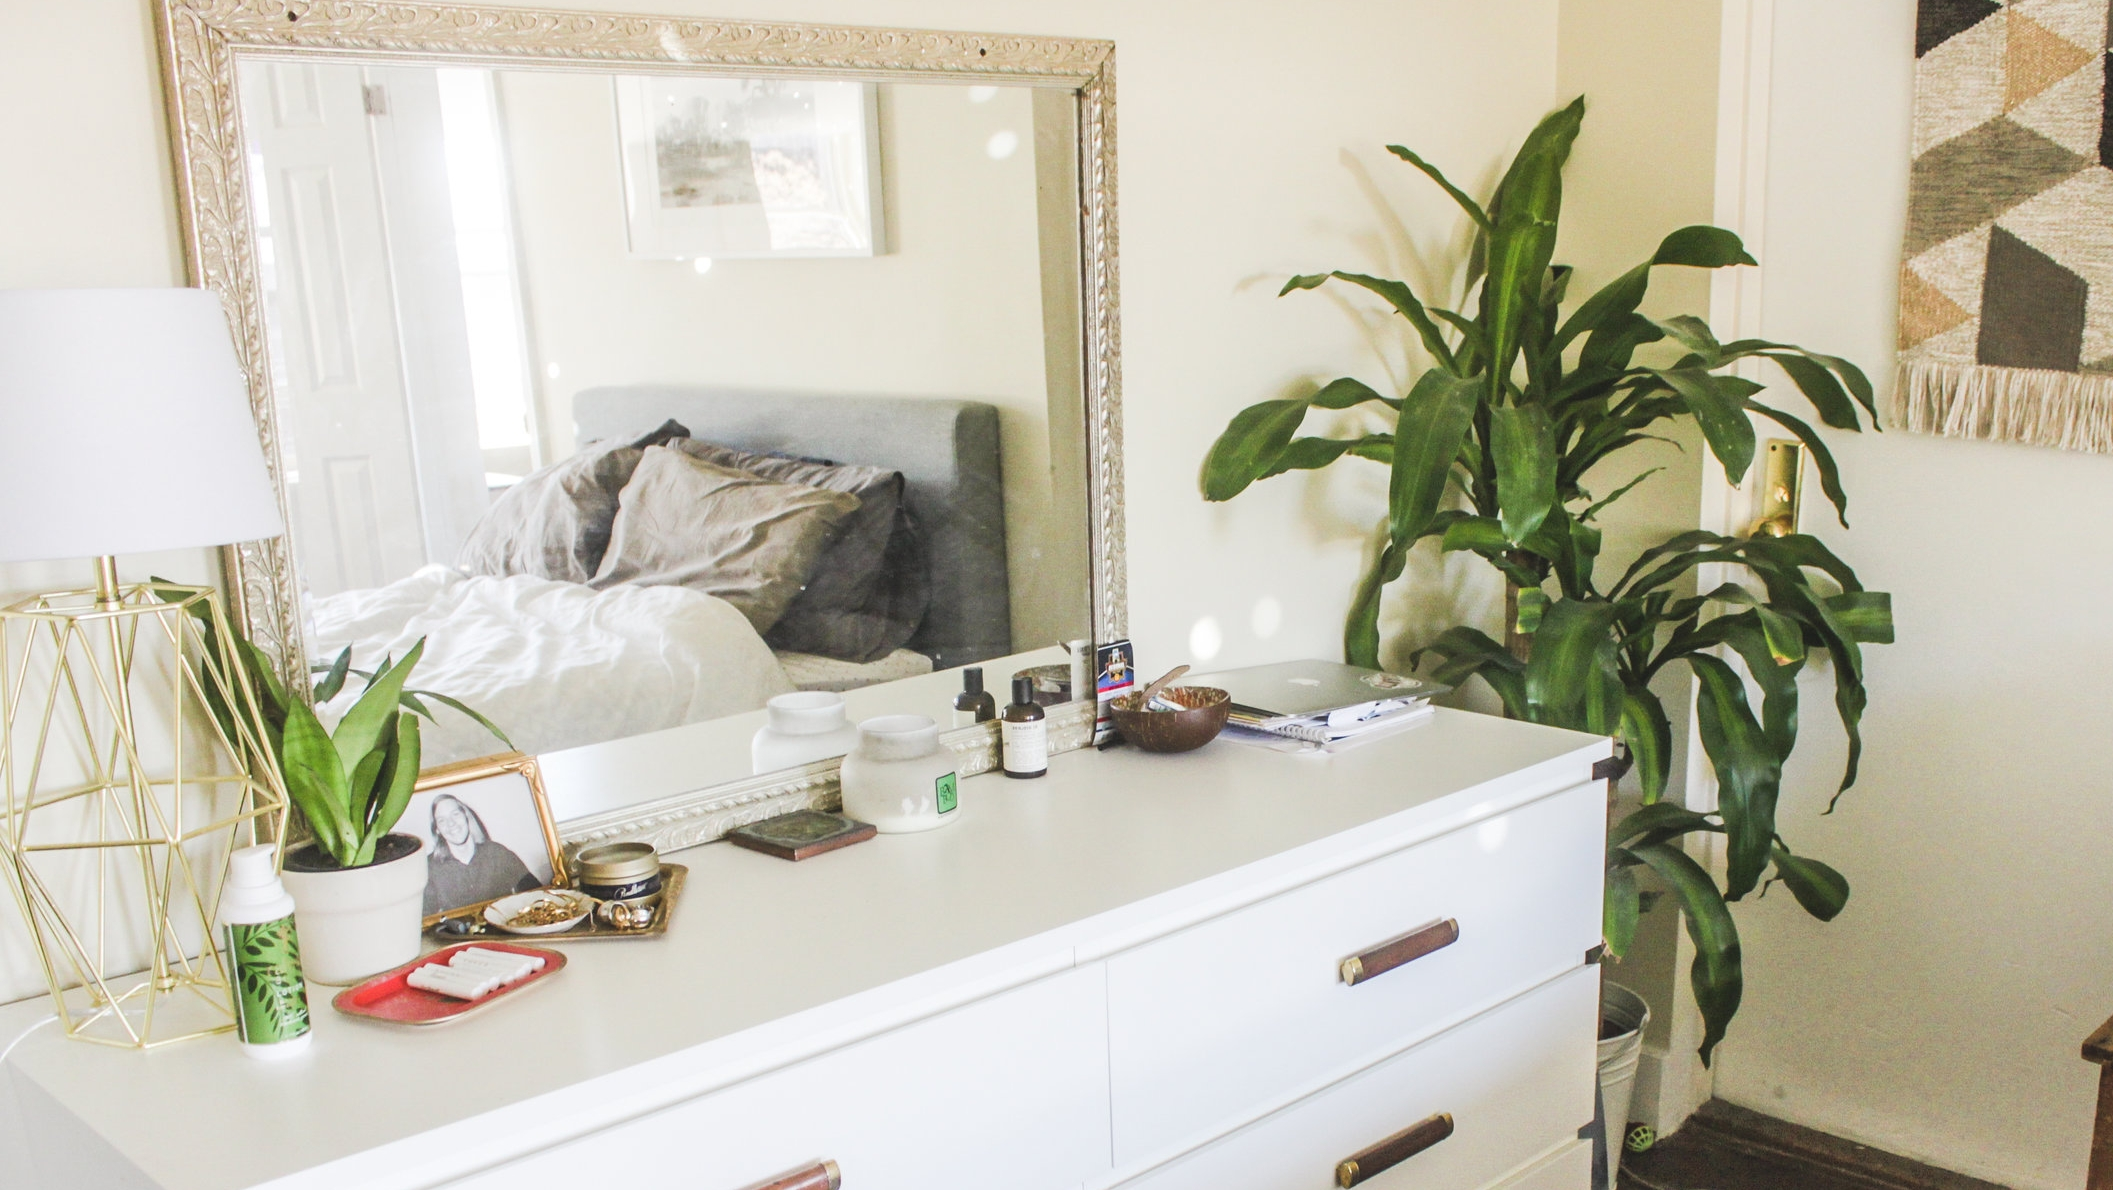 gold lamp: target // gold mirror: thrifted from craigslist full post on how i upgraded this ikea dresser coming soon!